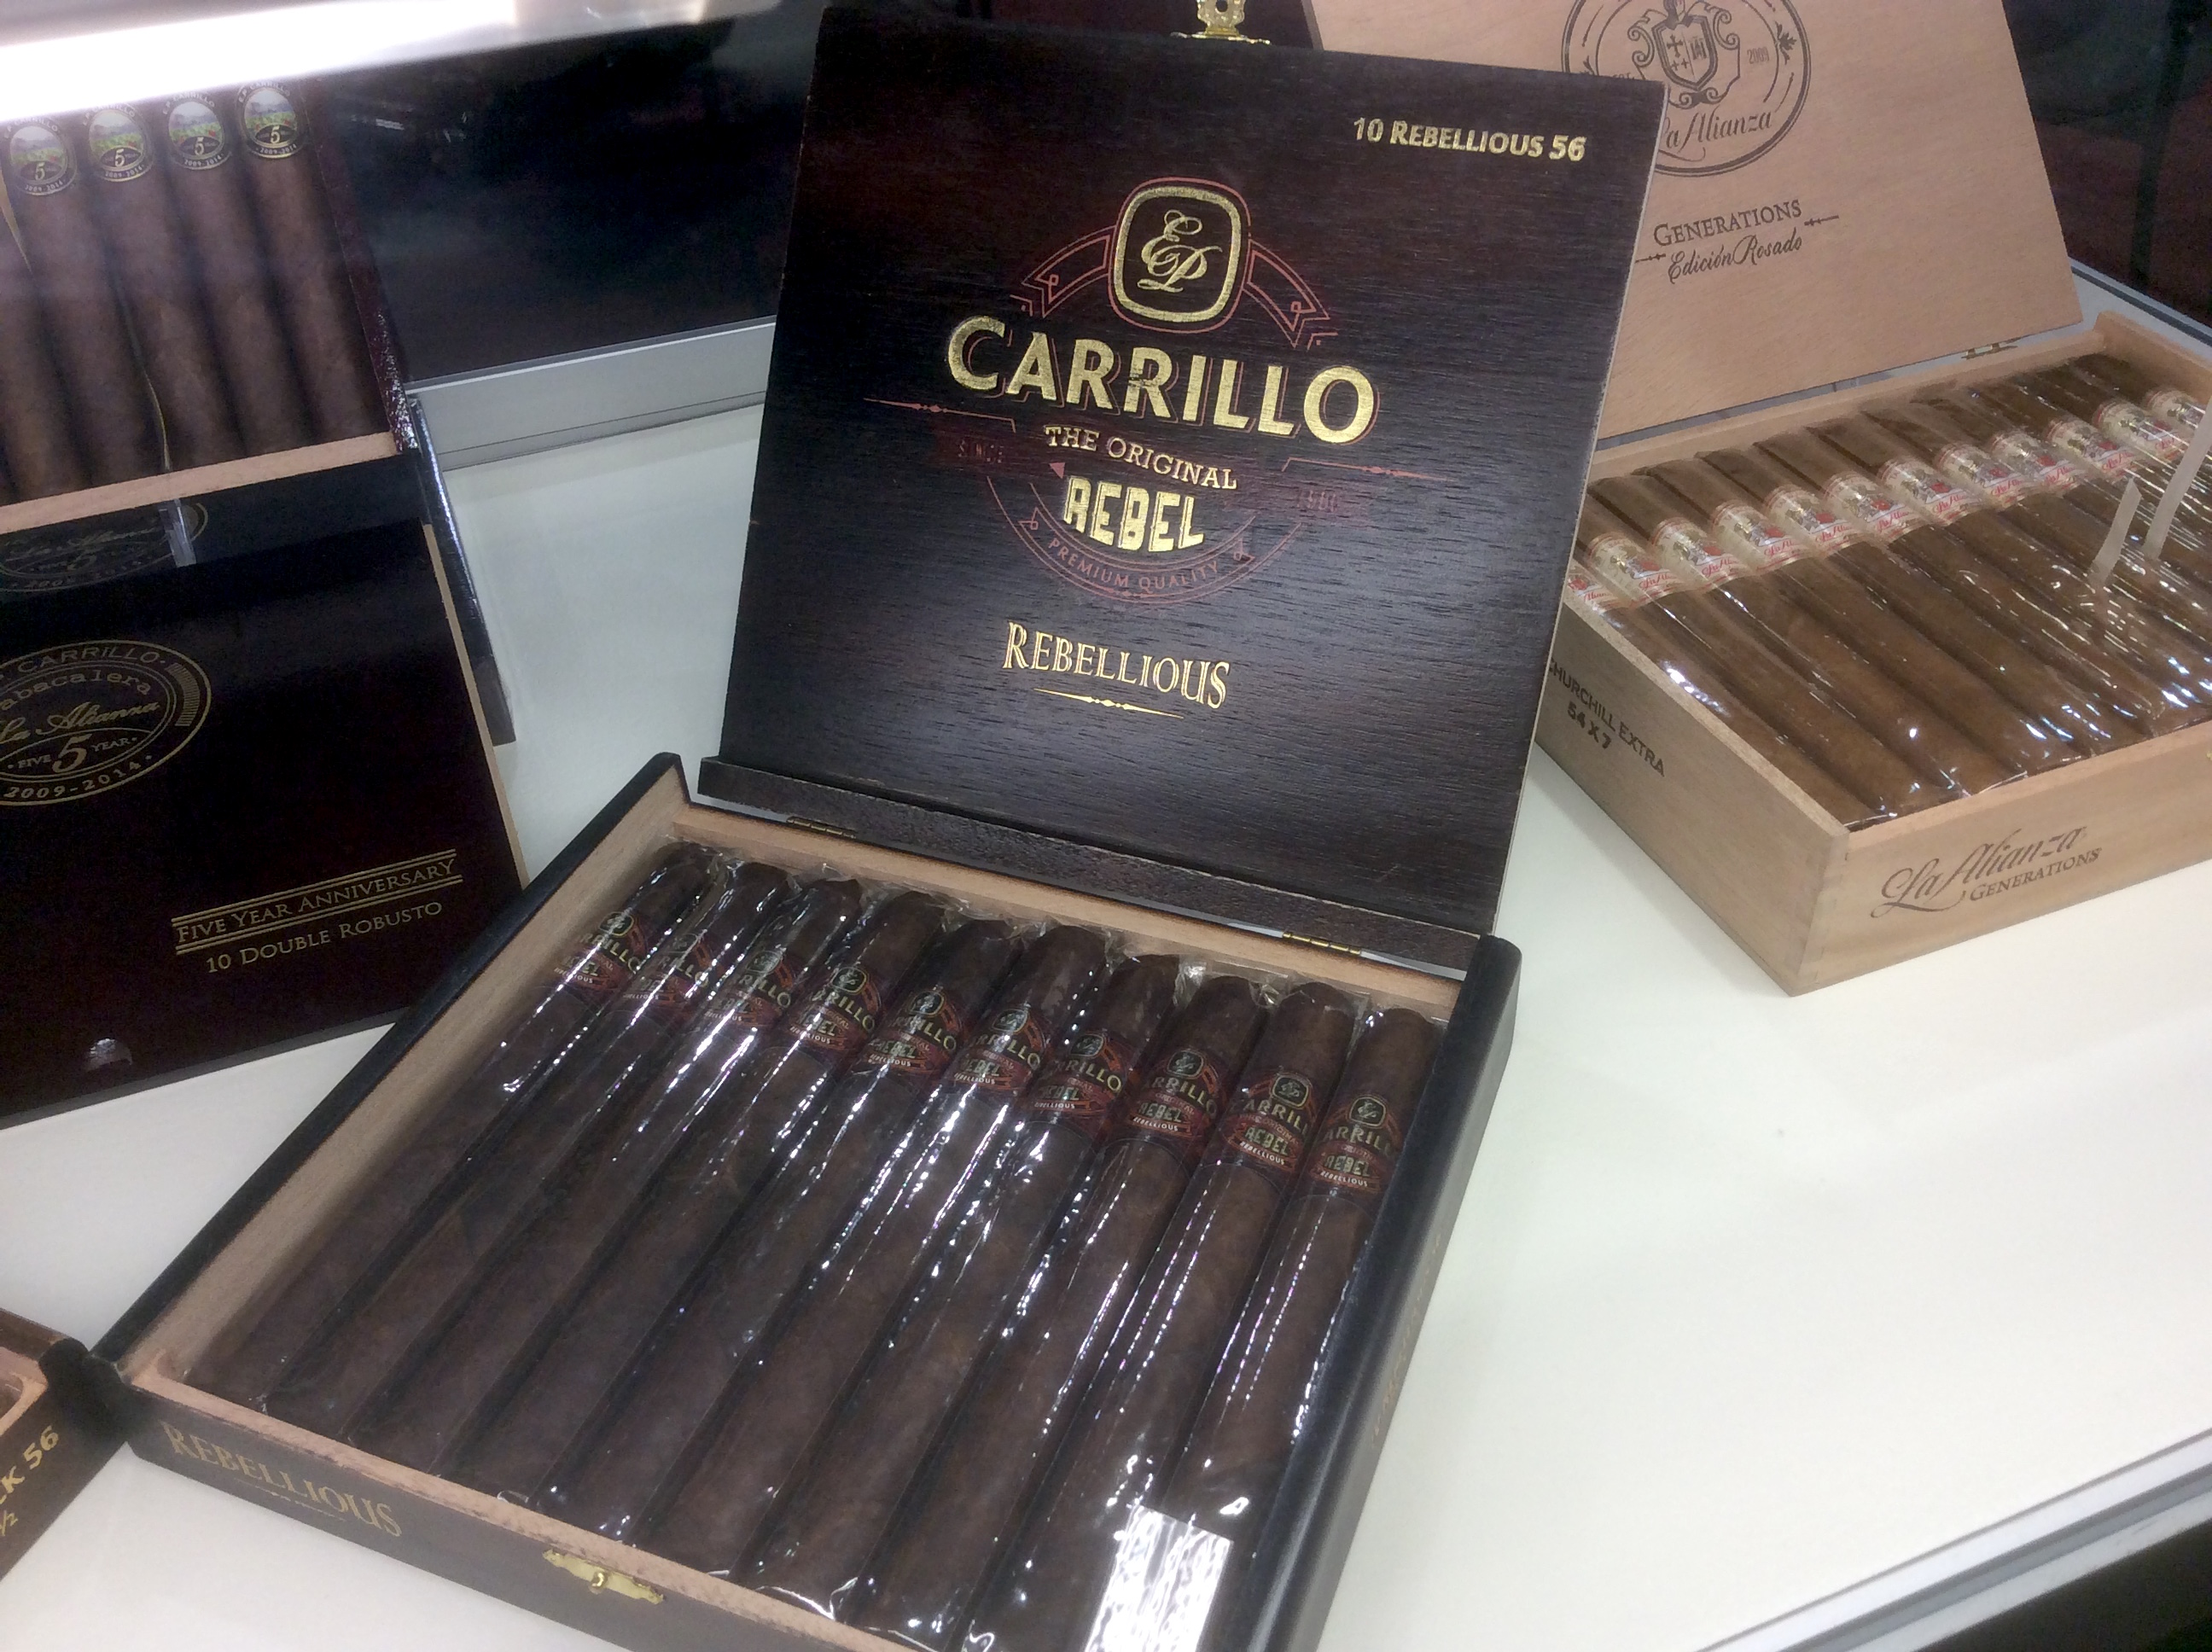 Agile Cigar Review: E.P. Carrillo Original Rebel Rebellious 56